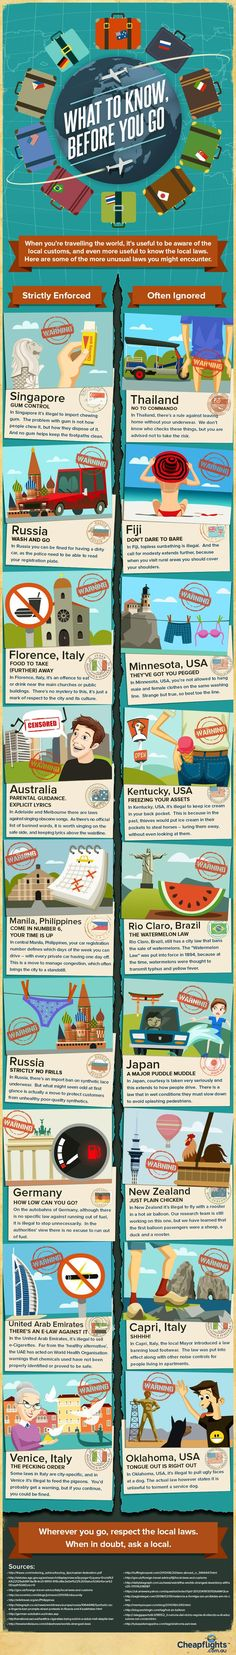 Bizarre Laws From Around the World